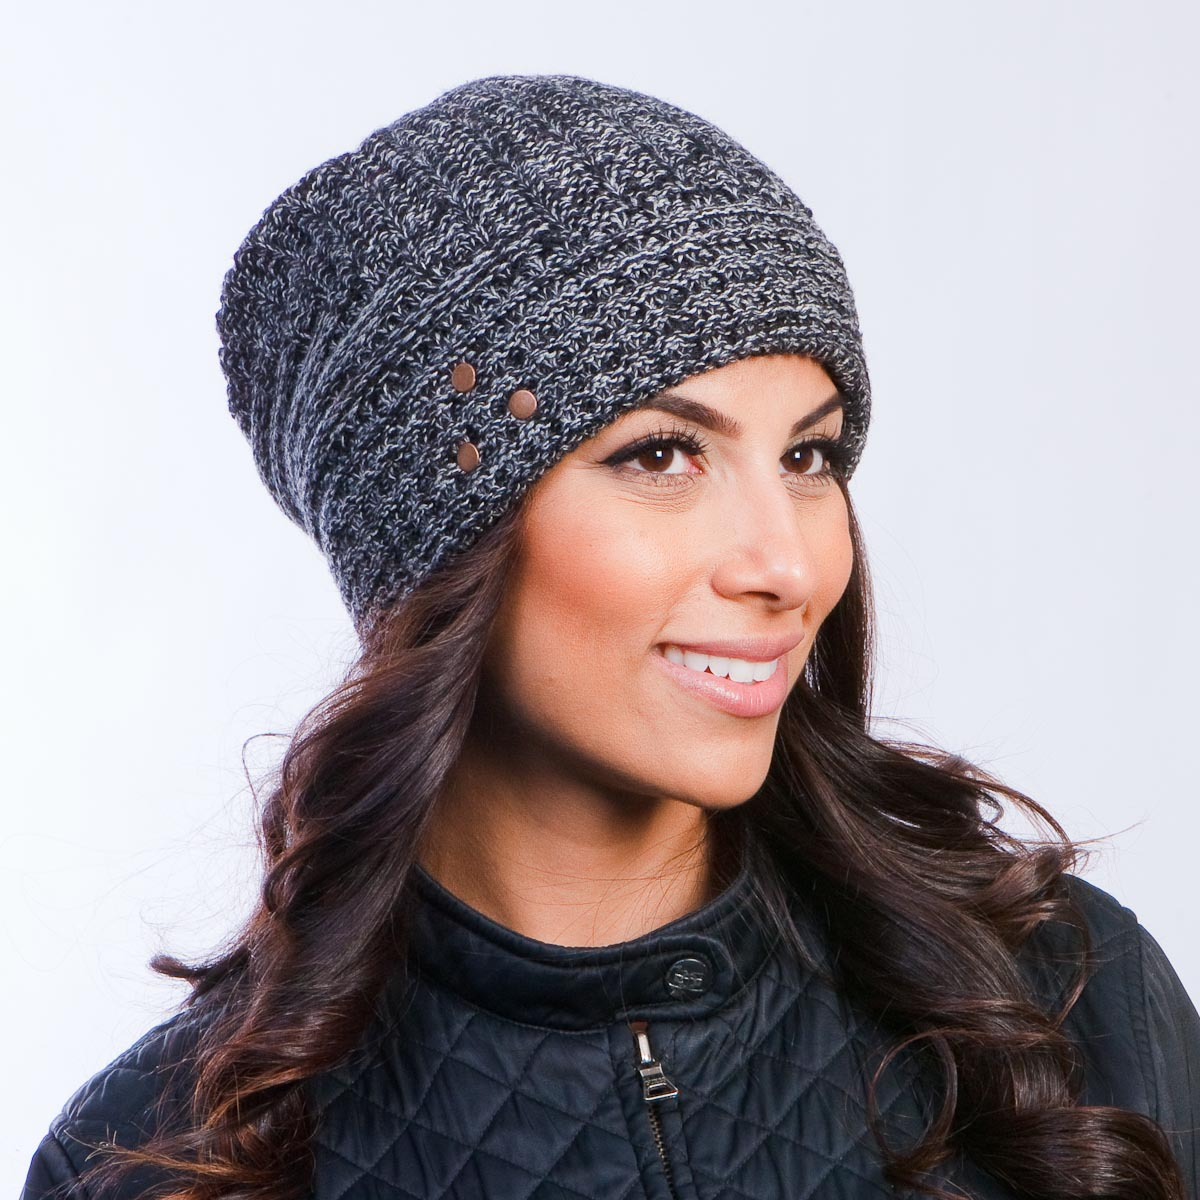 Tough Headwear Cable Knit Beanie - Thick, Soft & Warm Chunky Beanie Hats for Women & Men - Serious Beanies for Serious Style. by Tough Headwear. $ - $ $ 8 $ 9 95 Prime. FREE Shipping on eligible orders. Some colors are Prime eligible. out of 5 stars 1, See Details.